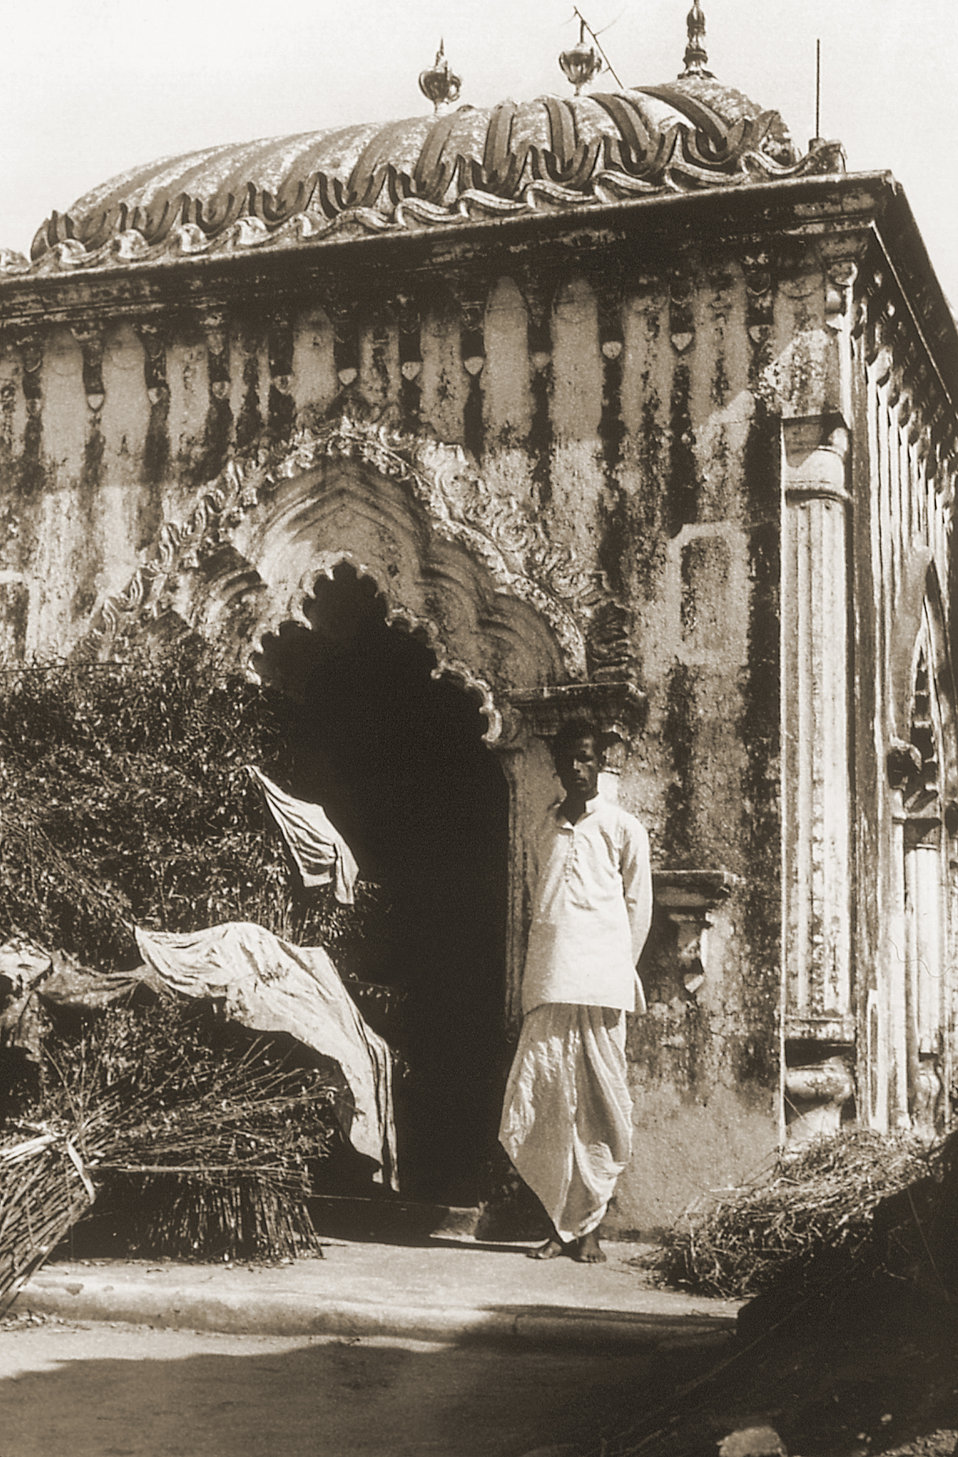 Standing outside the edifice, this 1975 image depicts the son of Pawapuri, or Pava, homeowner, who'd built a small temple in the name of his